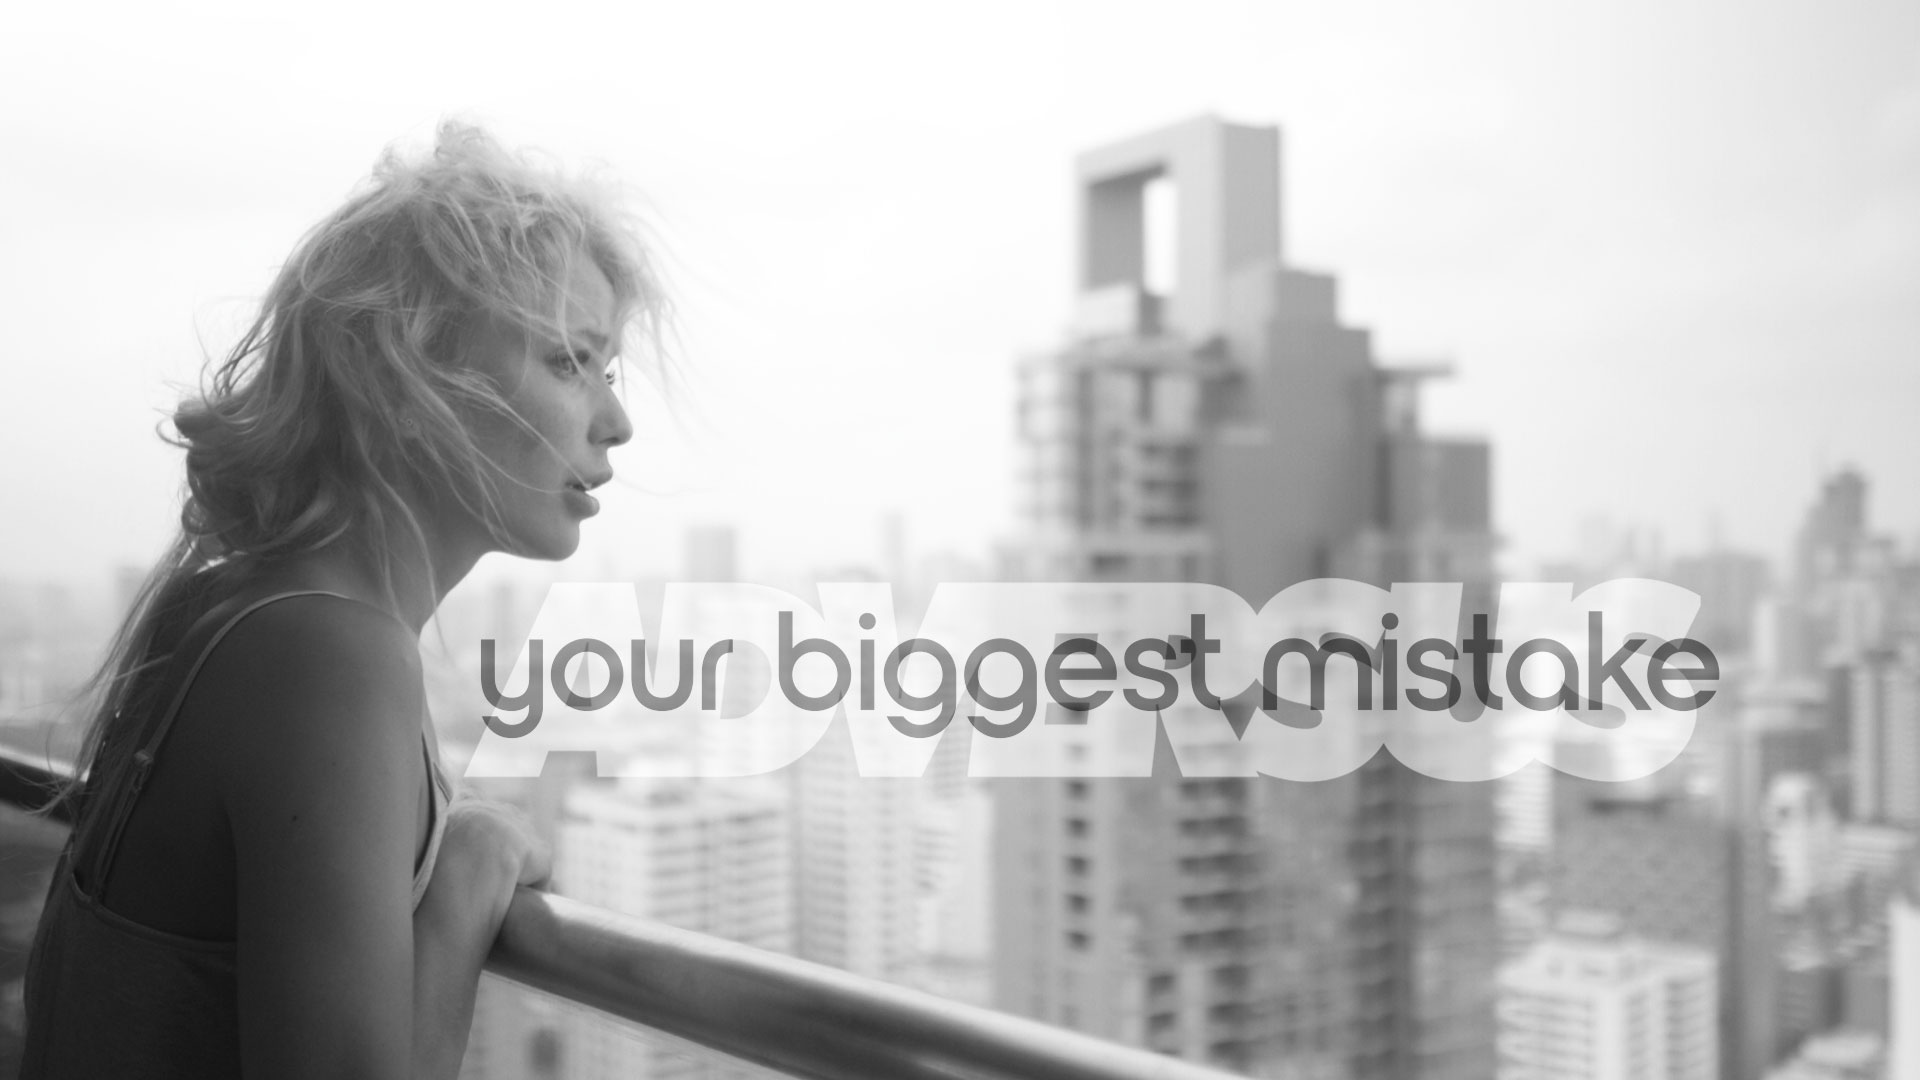 Your biggest mistake. A short movie with Olga Novoselova